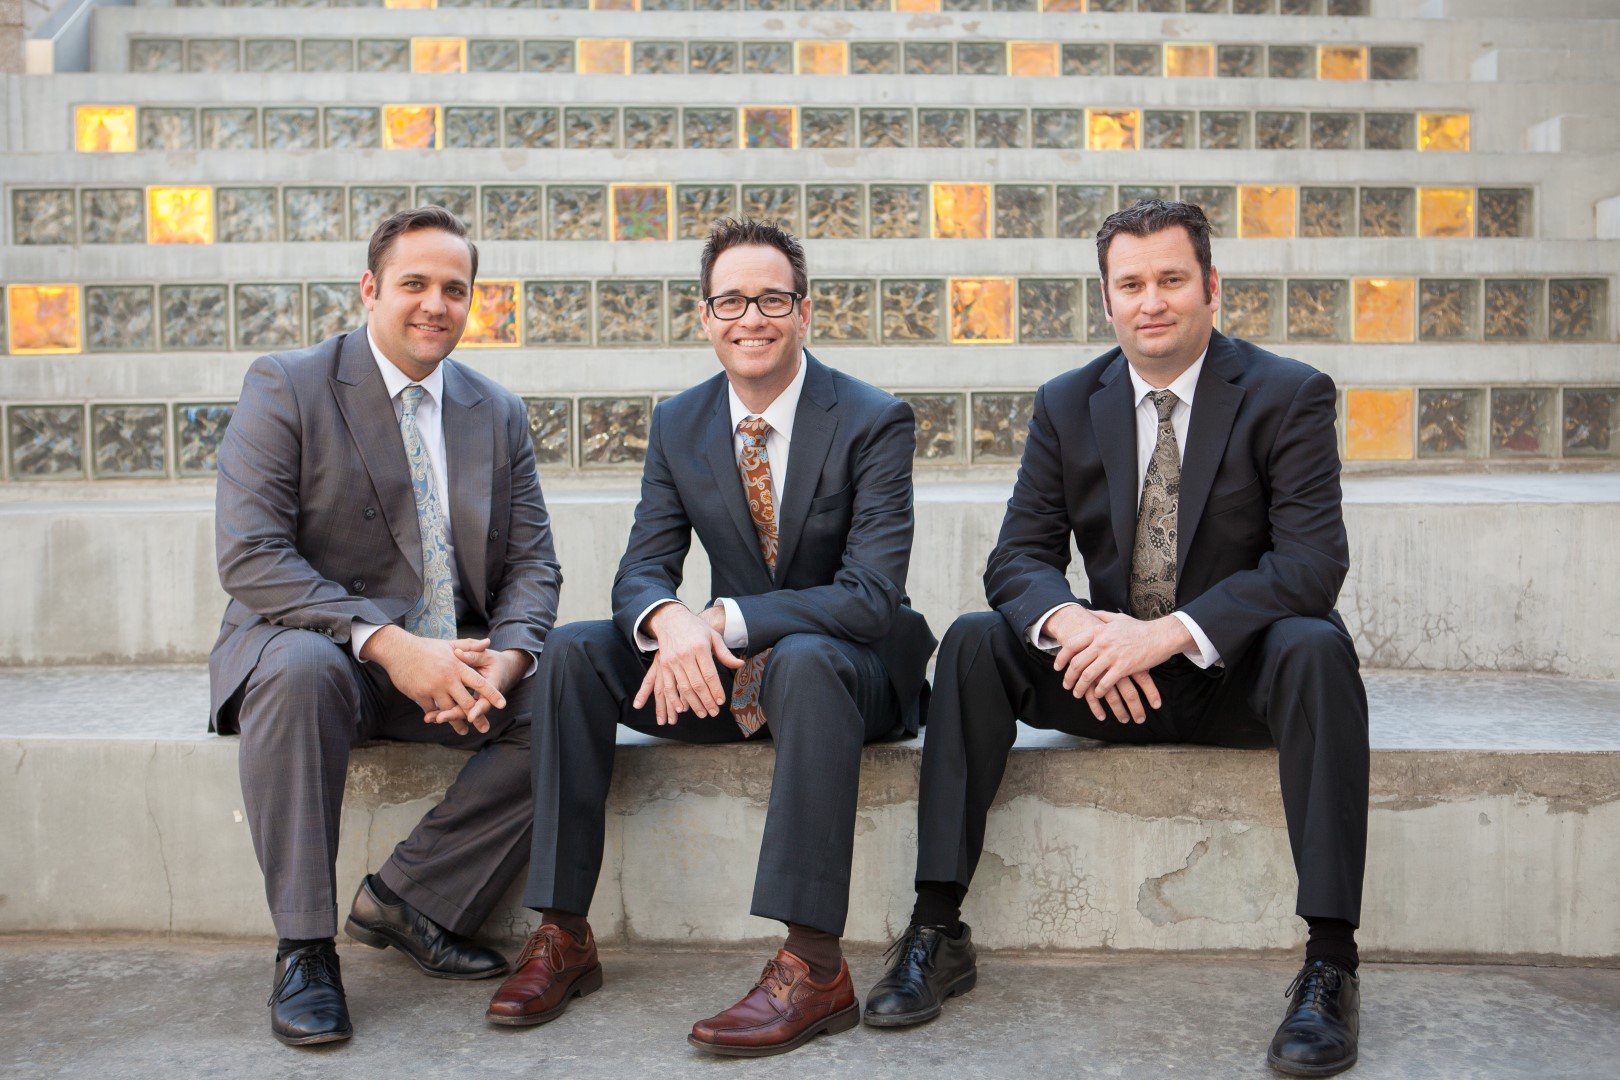 Dana Hogle, Nathan Hogle & Chris Stapley of Hogle Family Law in Chandler, Arizona.